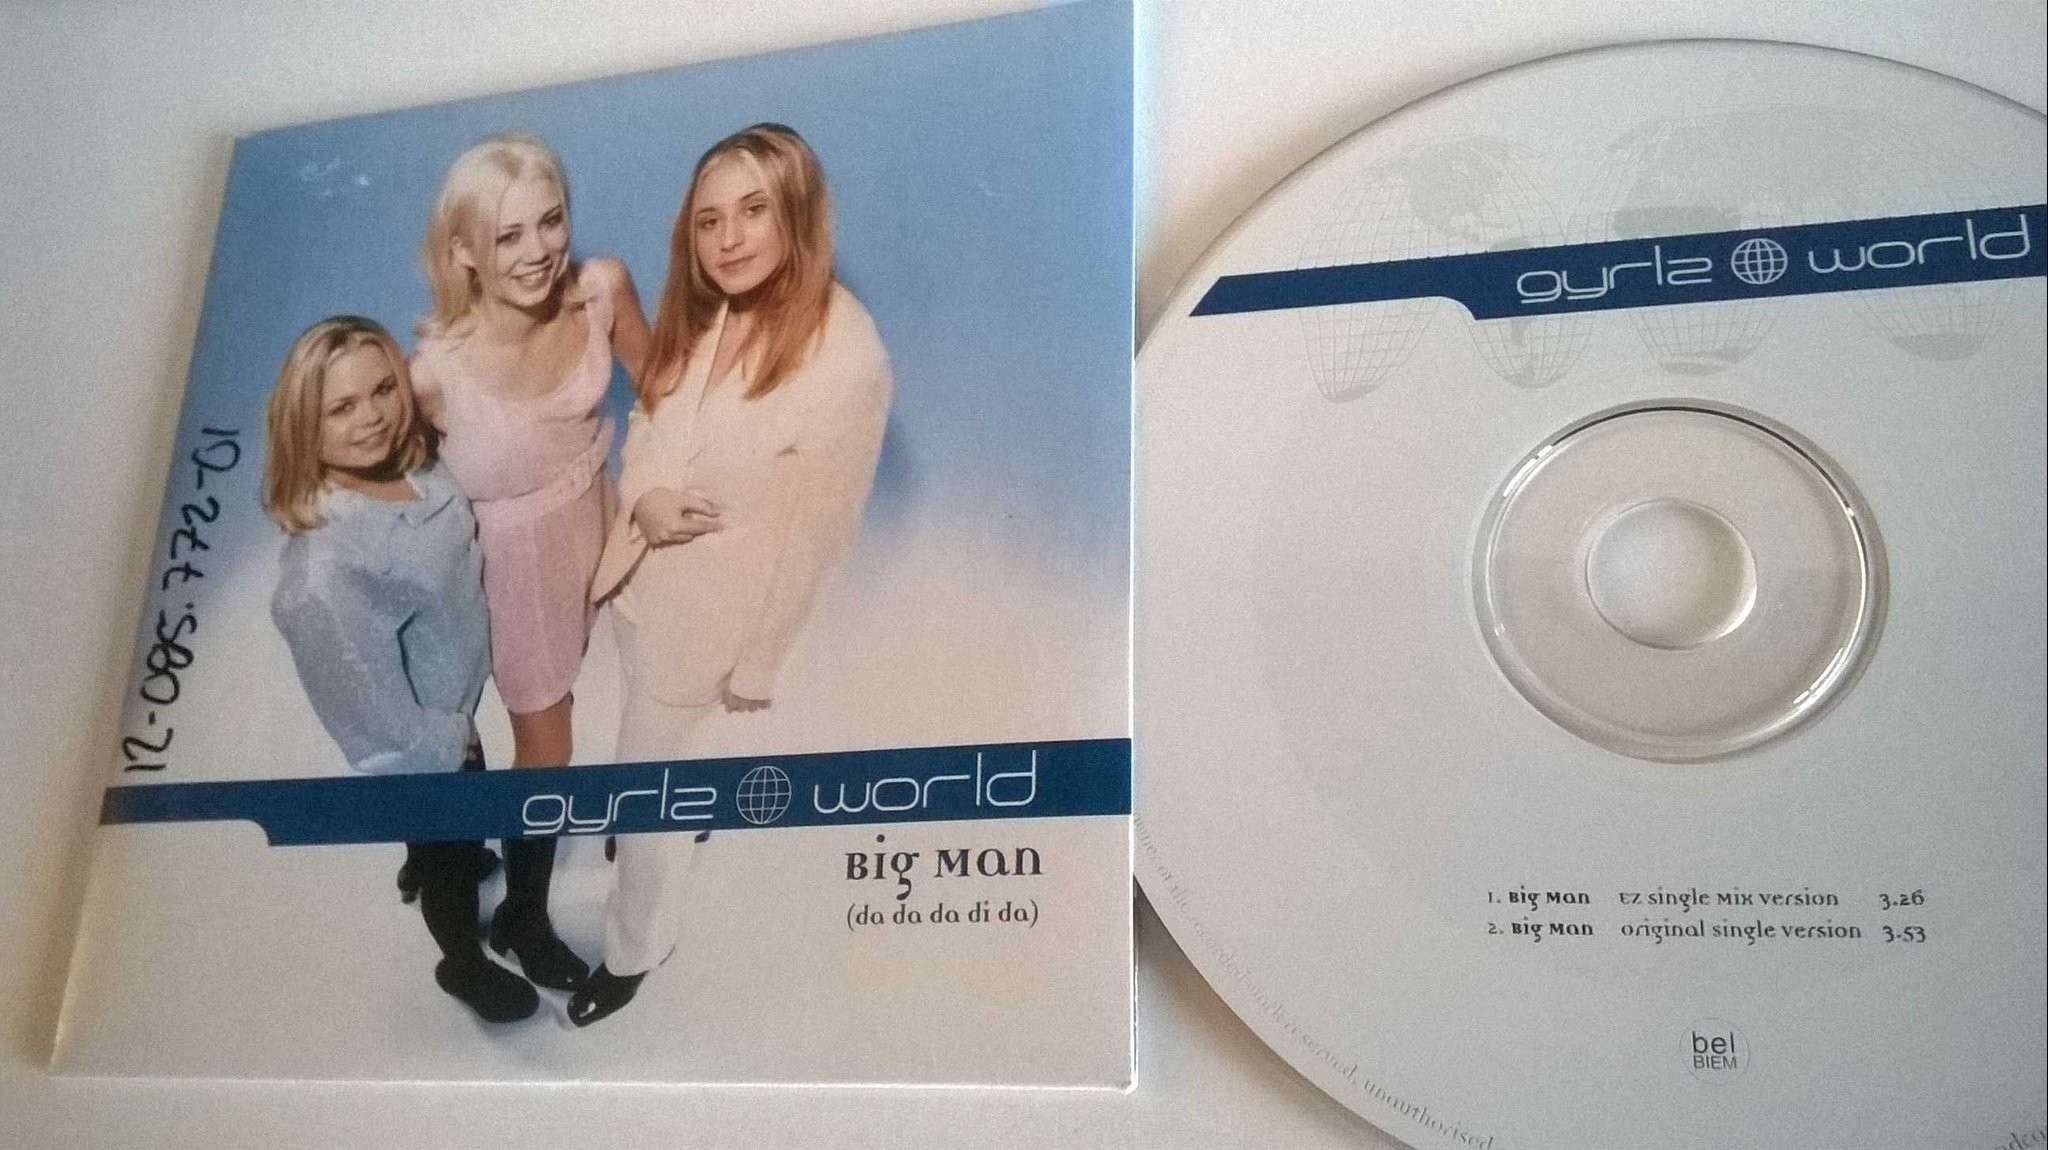 Gyrlz World ?- Big Man (Da Da Da Di Da), single CD